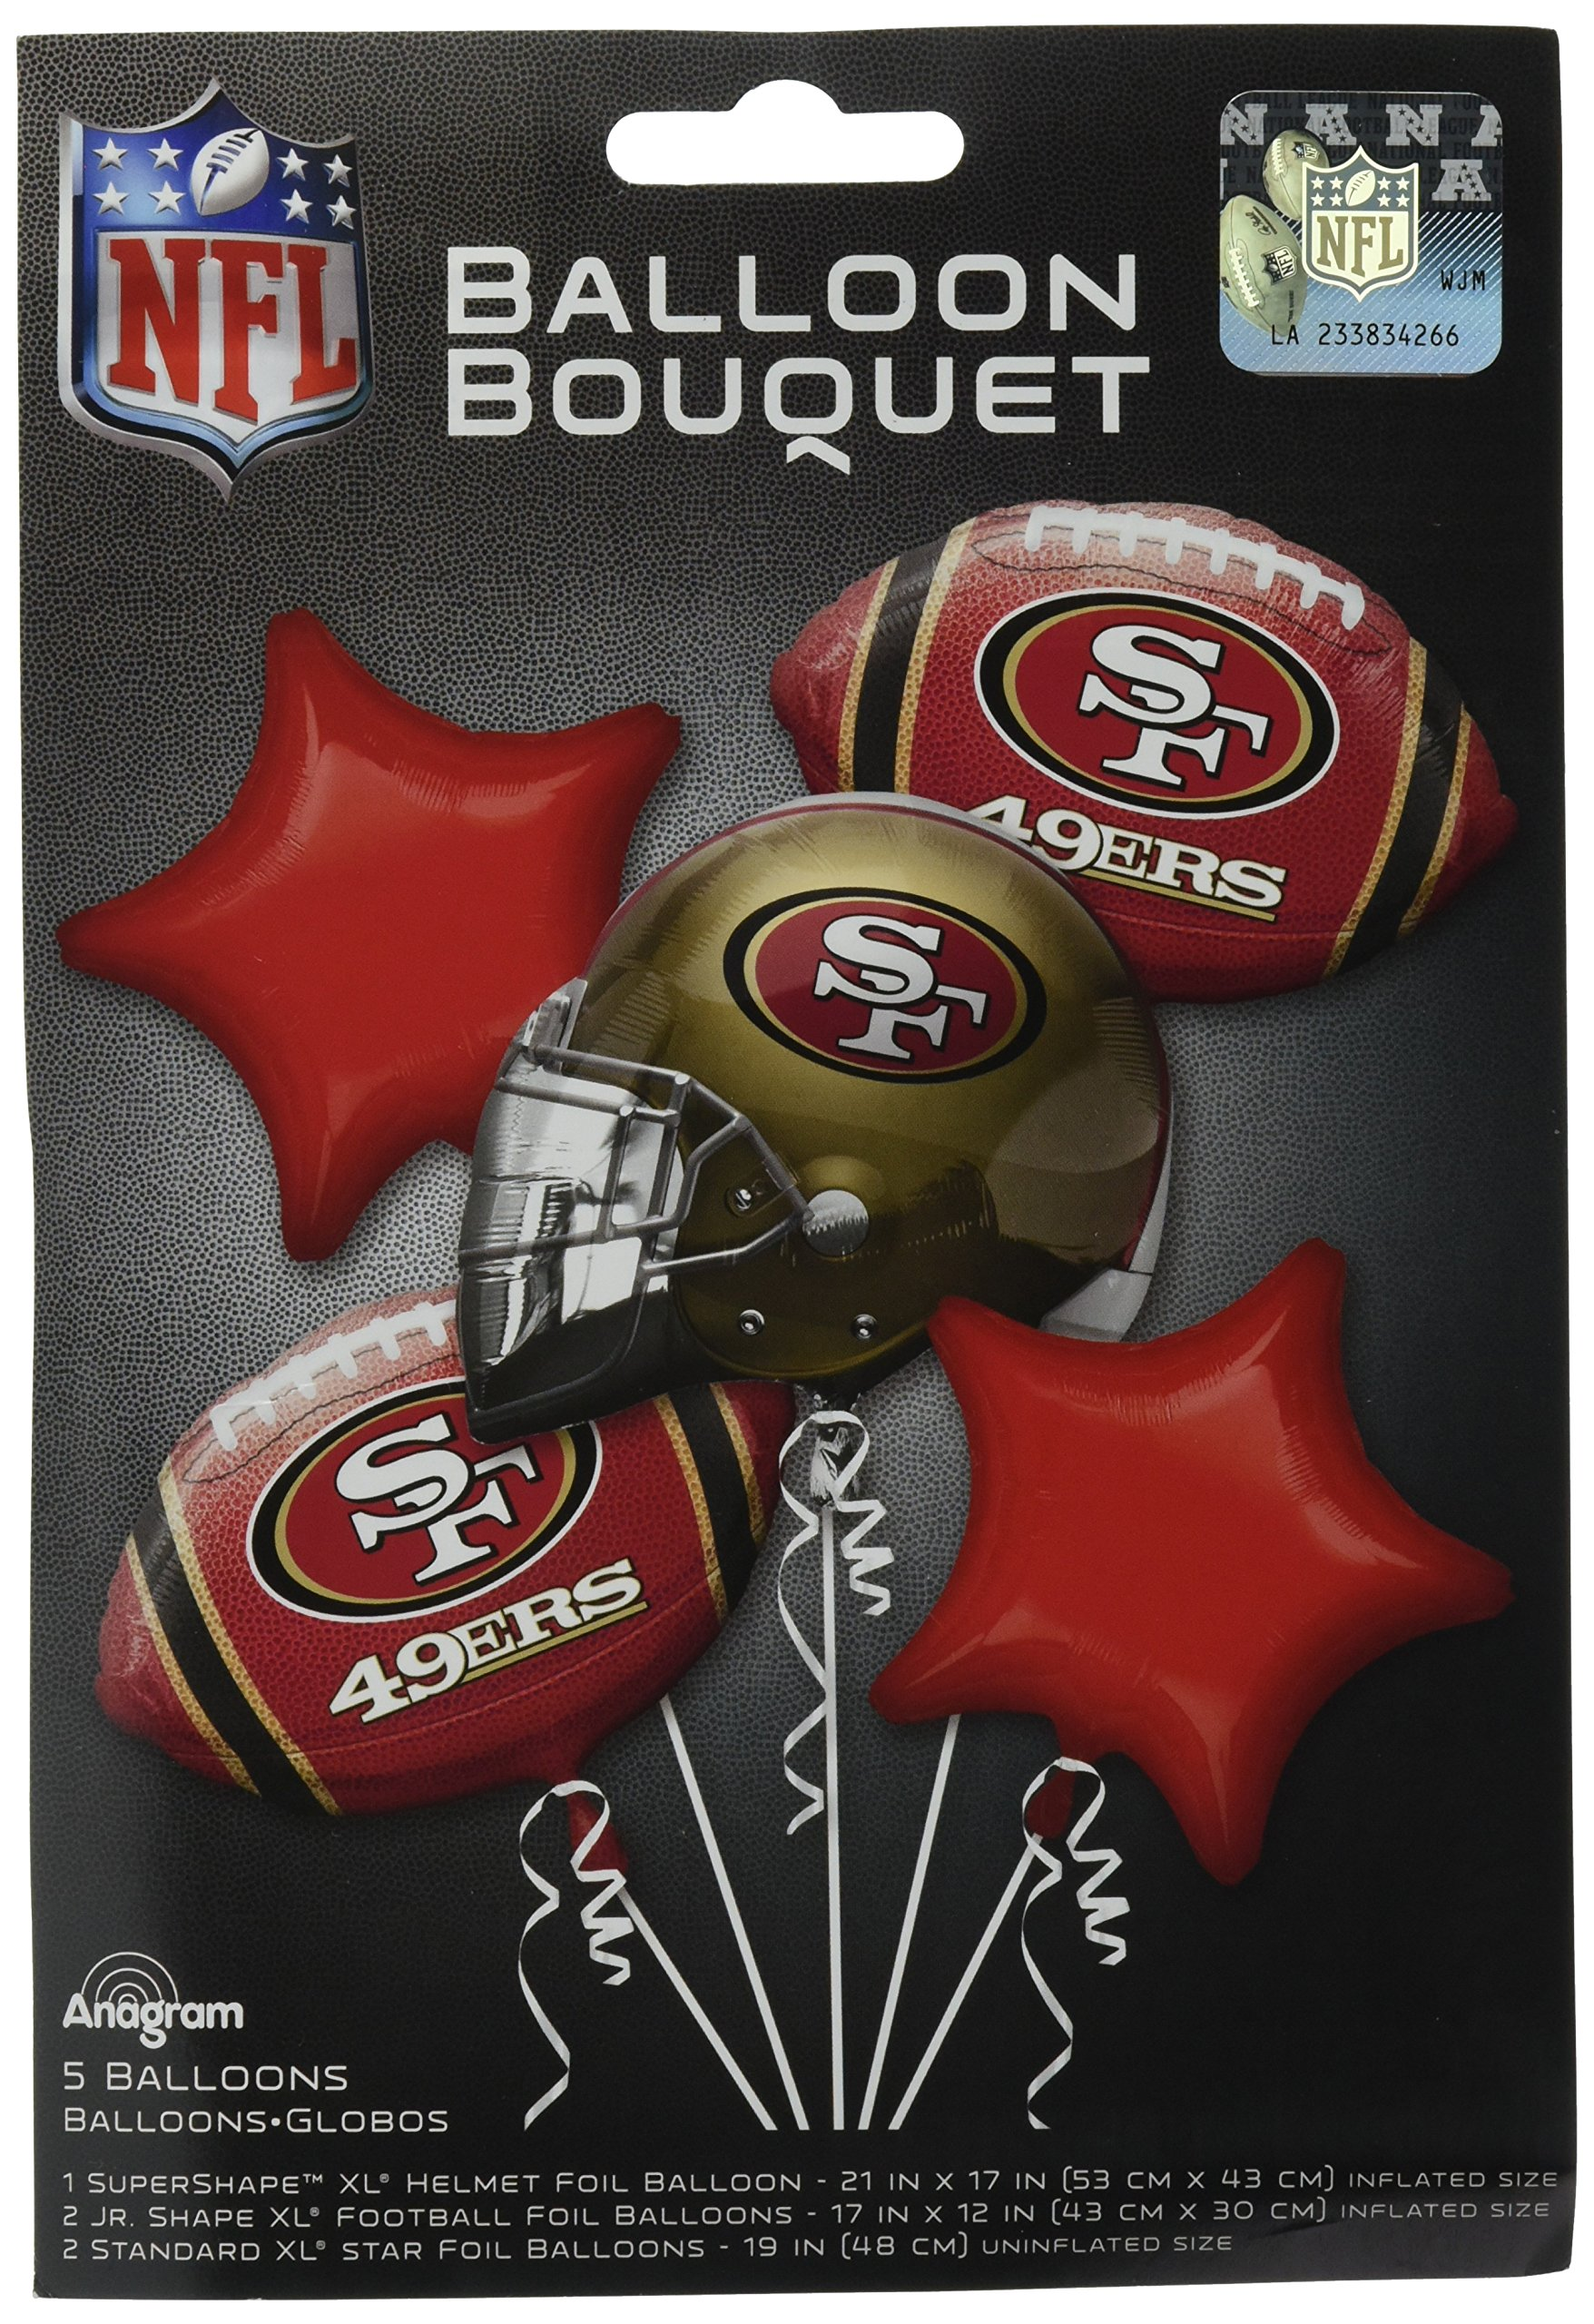 Anagram Bouquet 49ers Foil Balloons, Multicolor